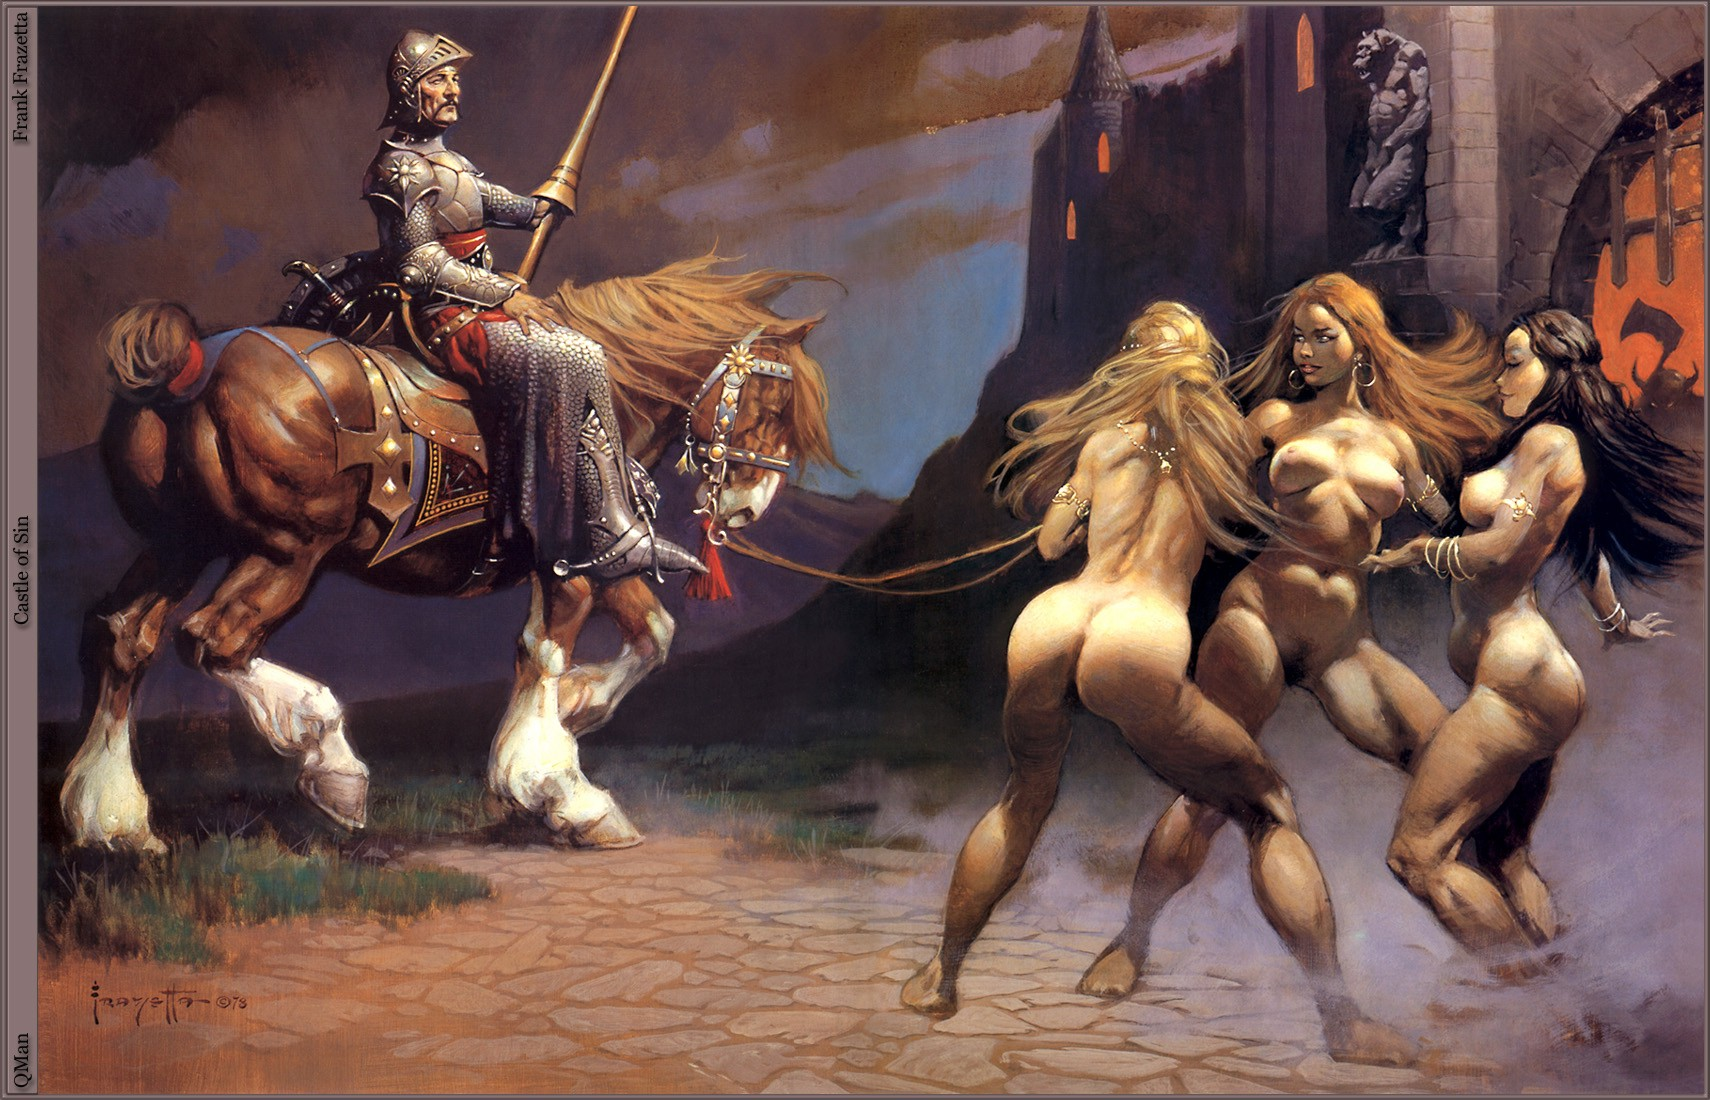 1 Knight And 3 Hot Muscular Girls Nude Painting